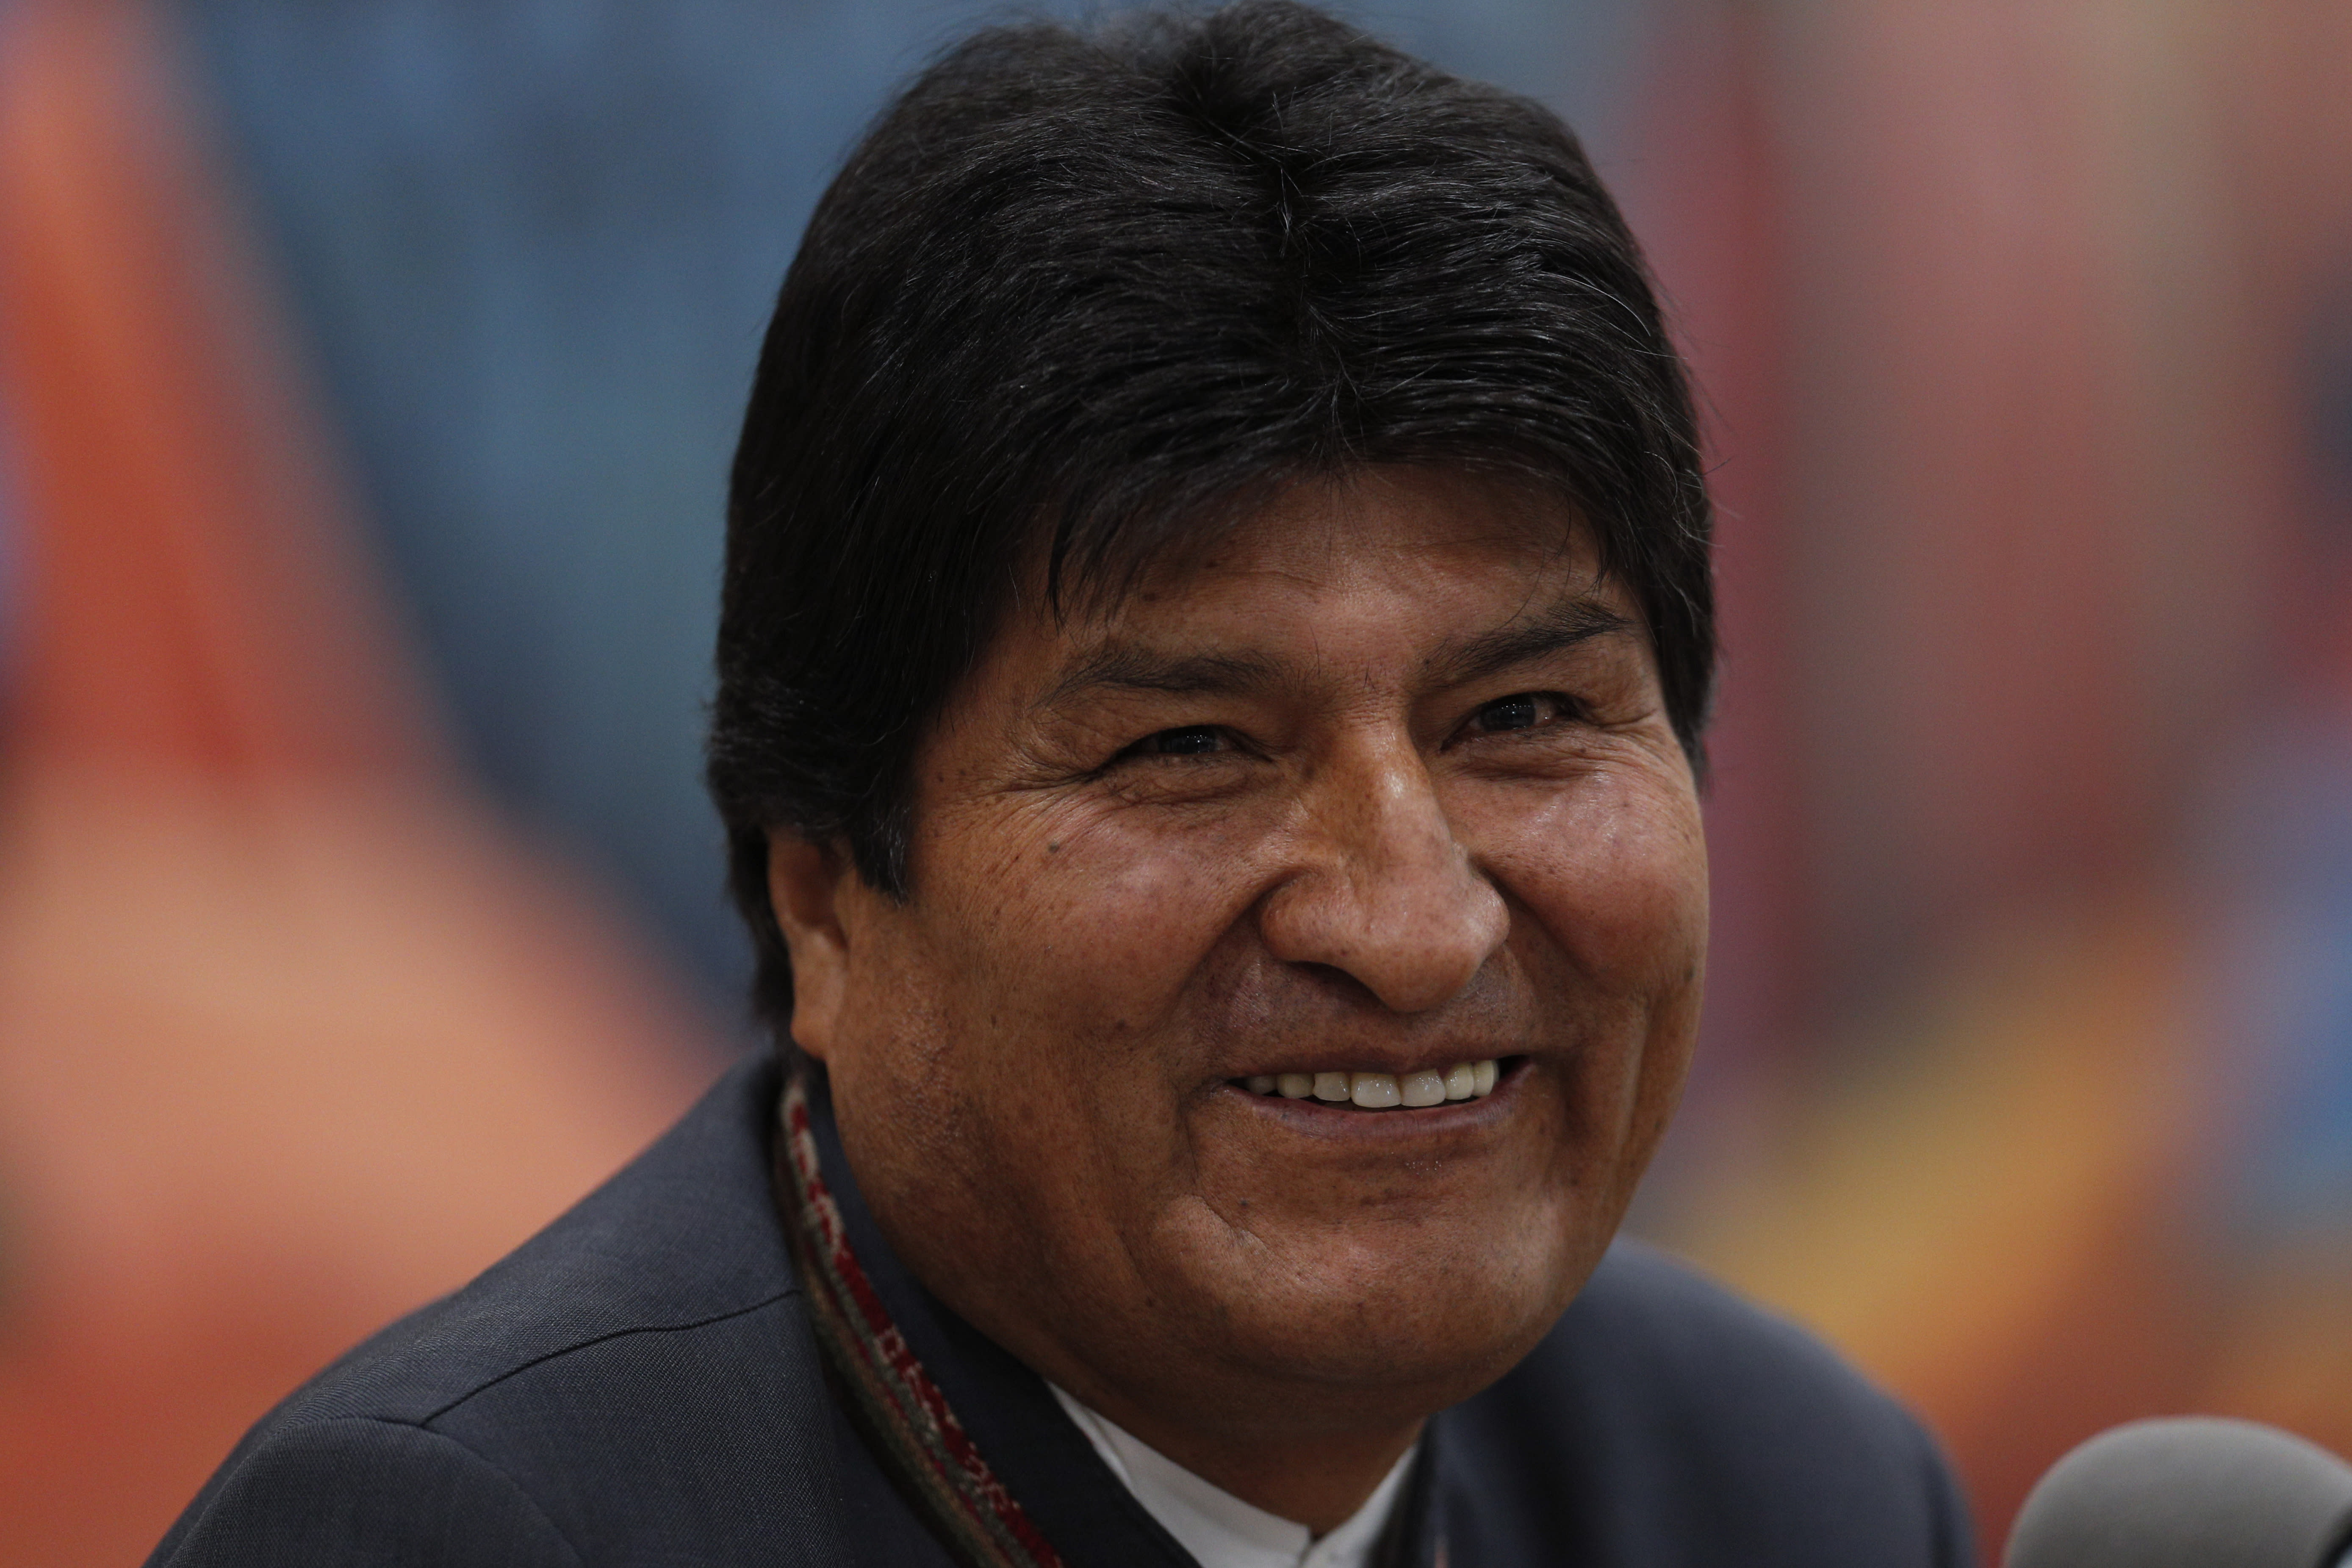 FILE - In this Oct. 24, 2019 file photo, Bolivia's President Evo Morales smiles during a press conference in La Paz, Bolivia. President Morales challenged his critics on Saturday, OCt. 27, to prove alleged fraud in his re-election, saying he'd welcome an international audit of the vote count. Electoral authorities say the soclalist leader narrowly won enough votes Sunday to avoid a December runoff election that might have seen opponents unite against him. (AP Photo/Juan Karita, File)